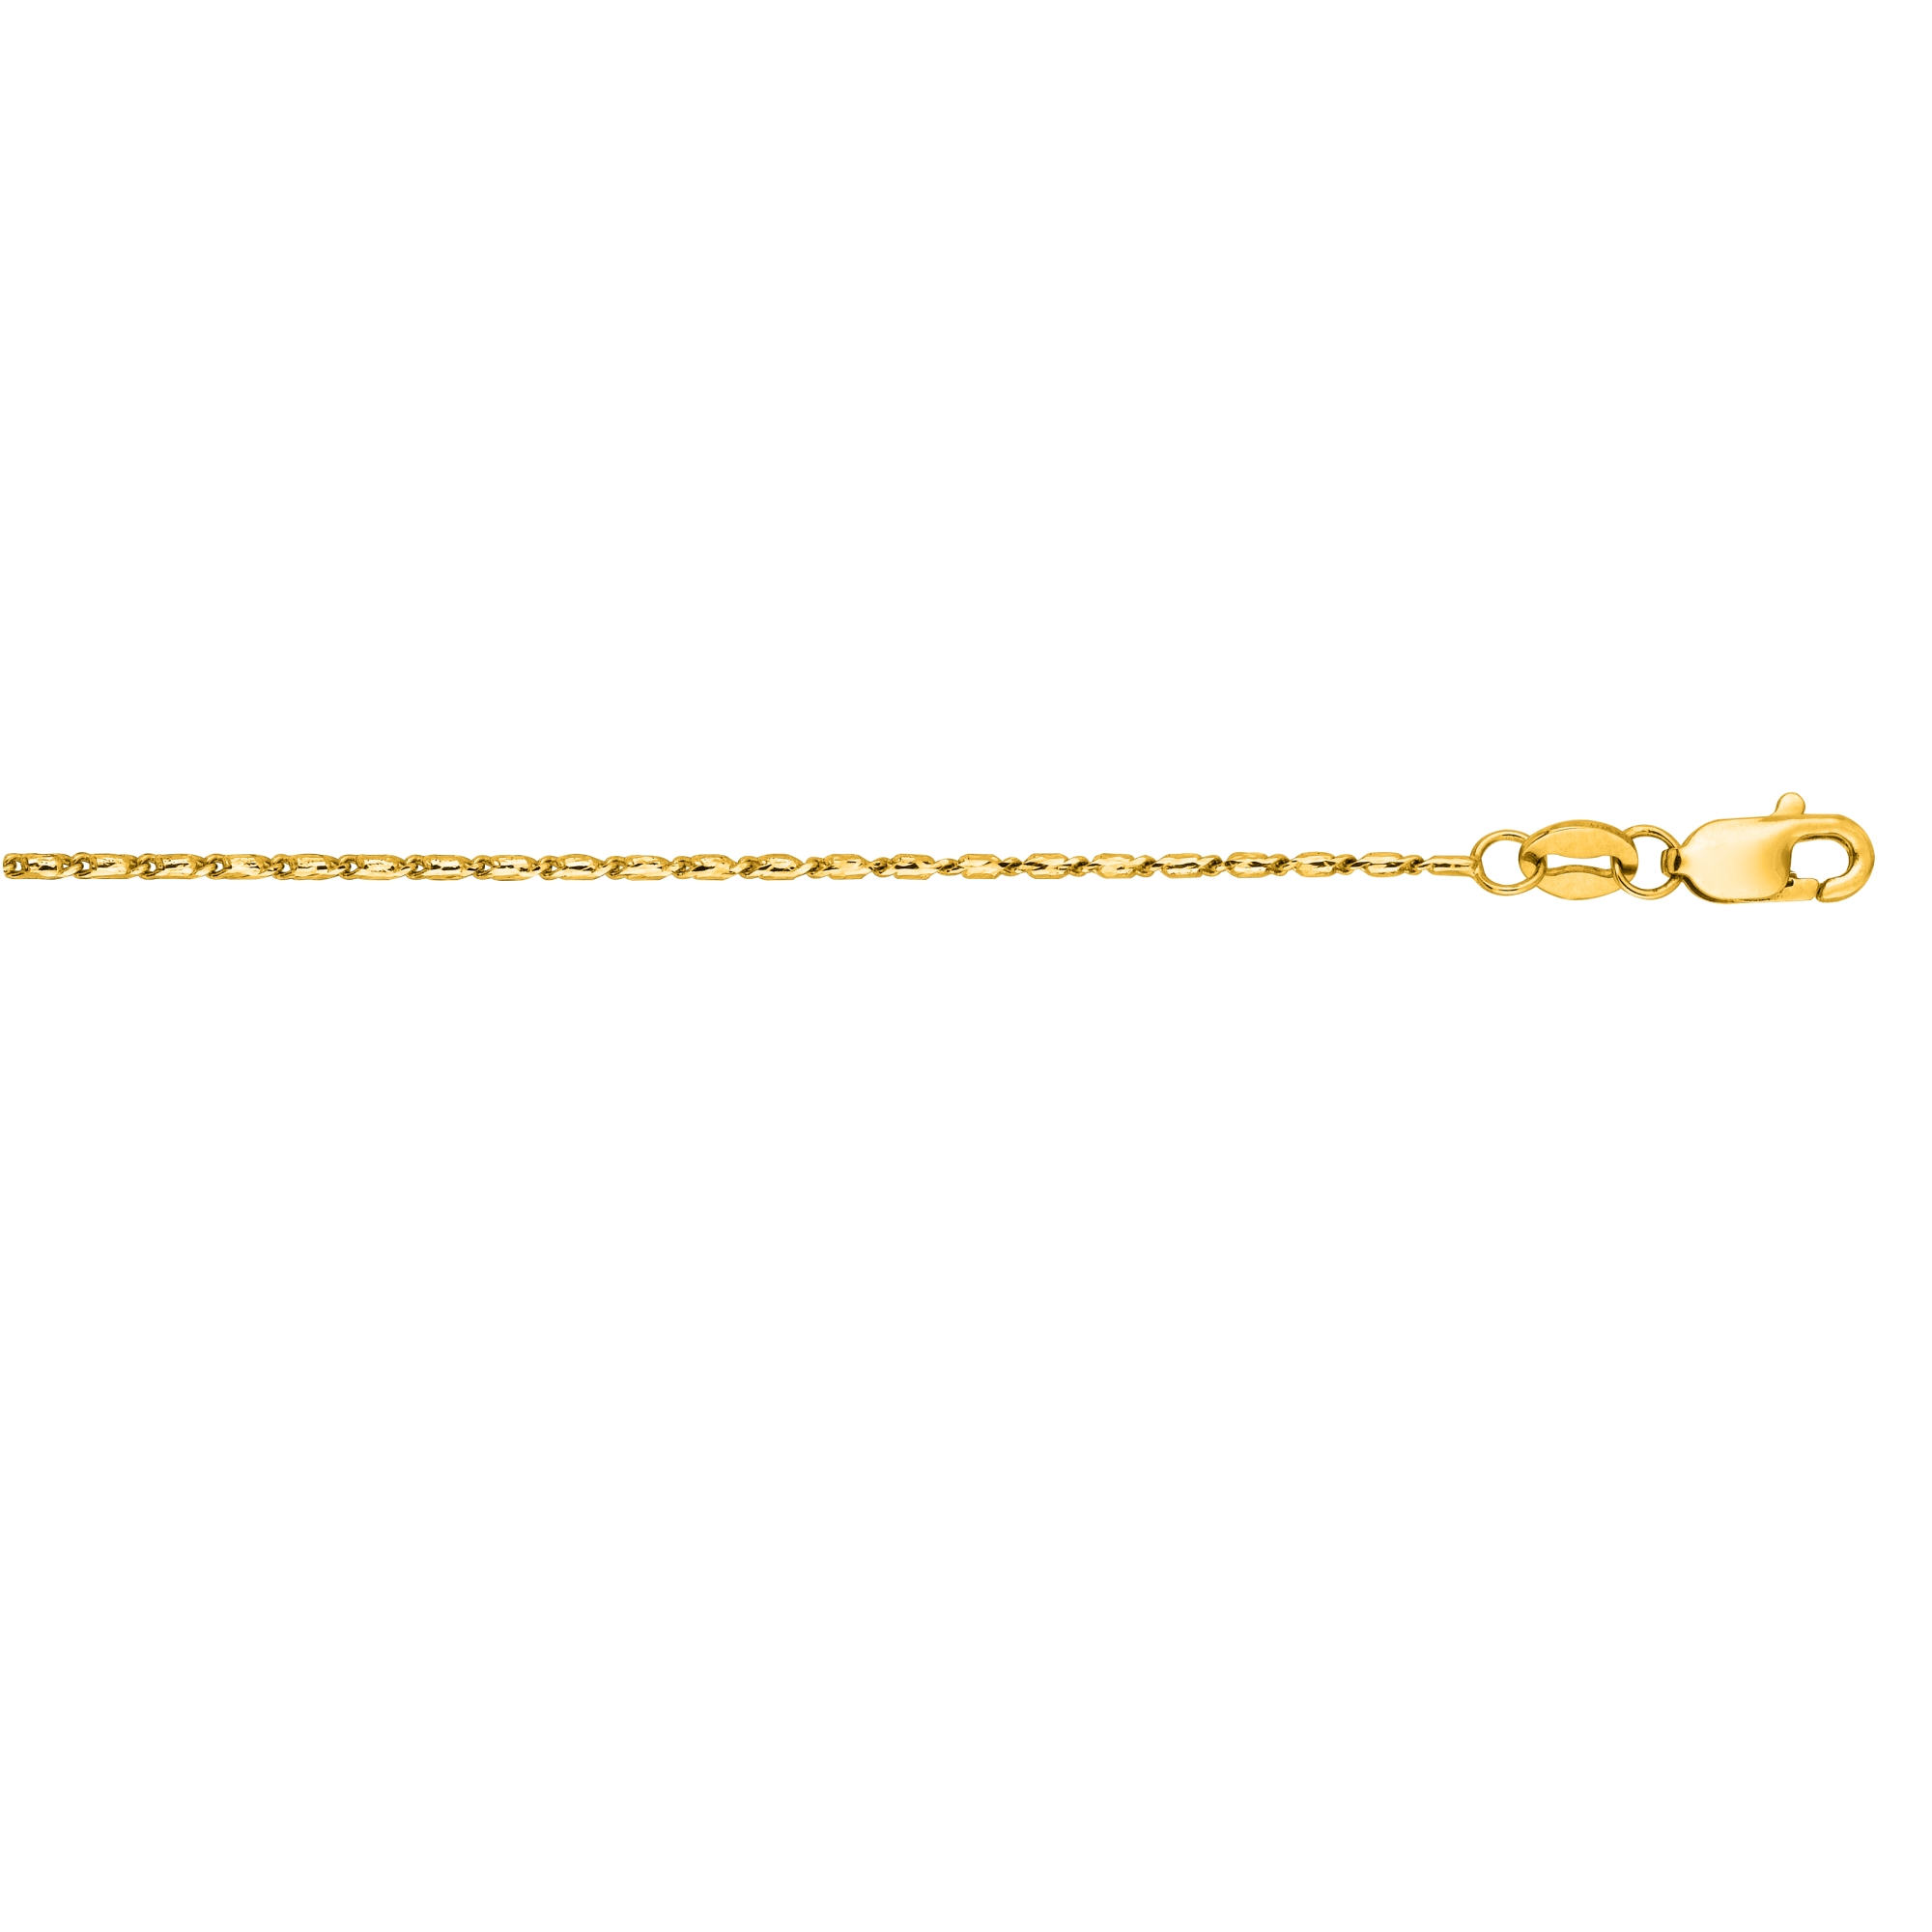 LUXURMAN Solid 14k Gold Lumina Chain For Women 0.9mm Wide